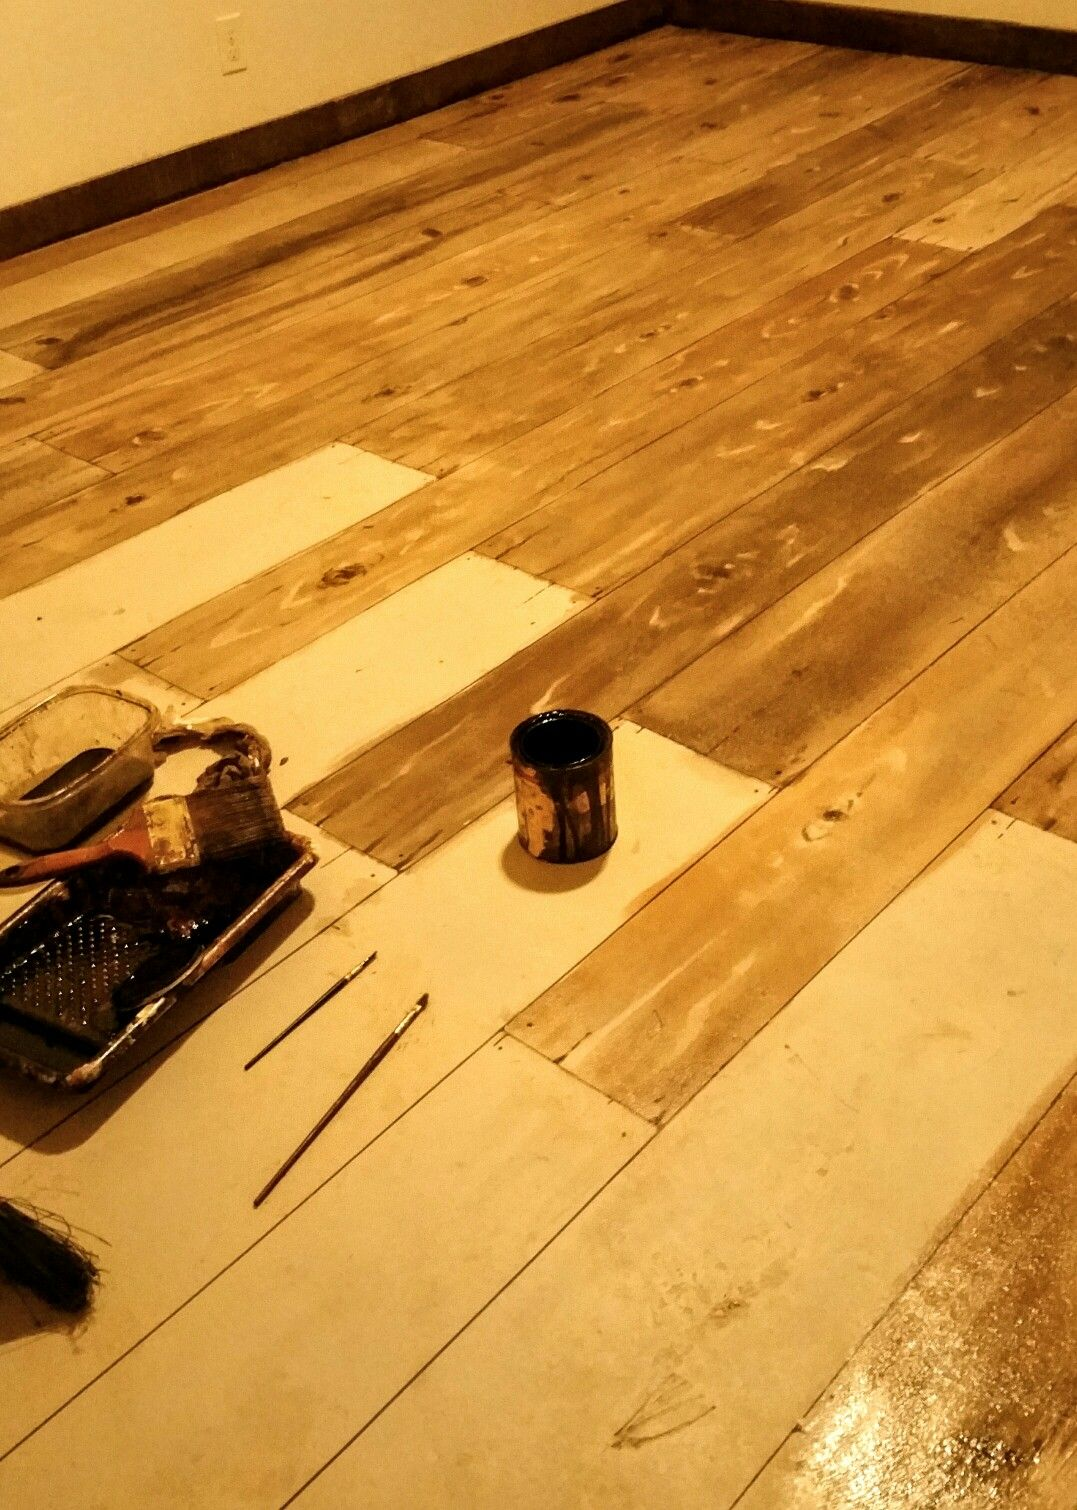 This Is A Concrete Floor Painted To Look Like Wood Using